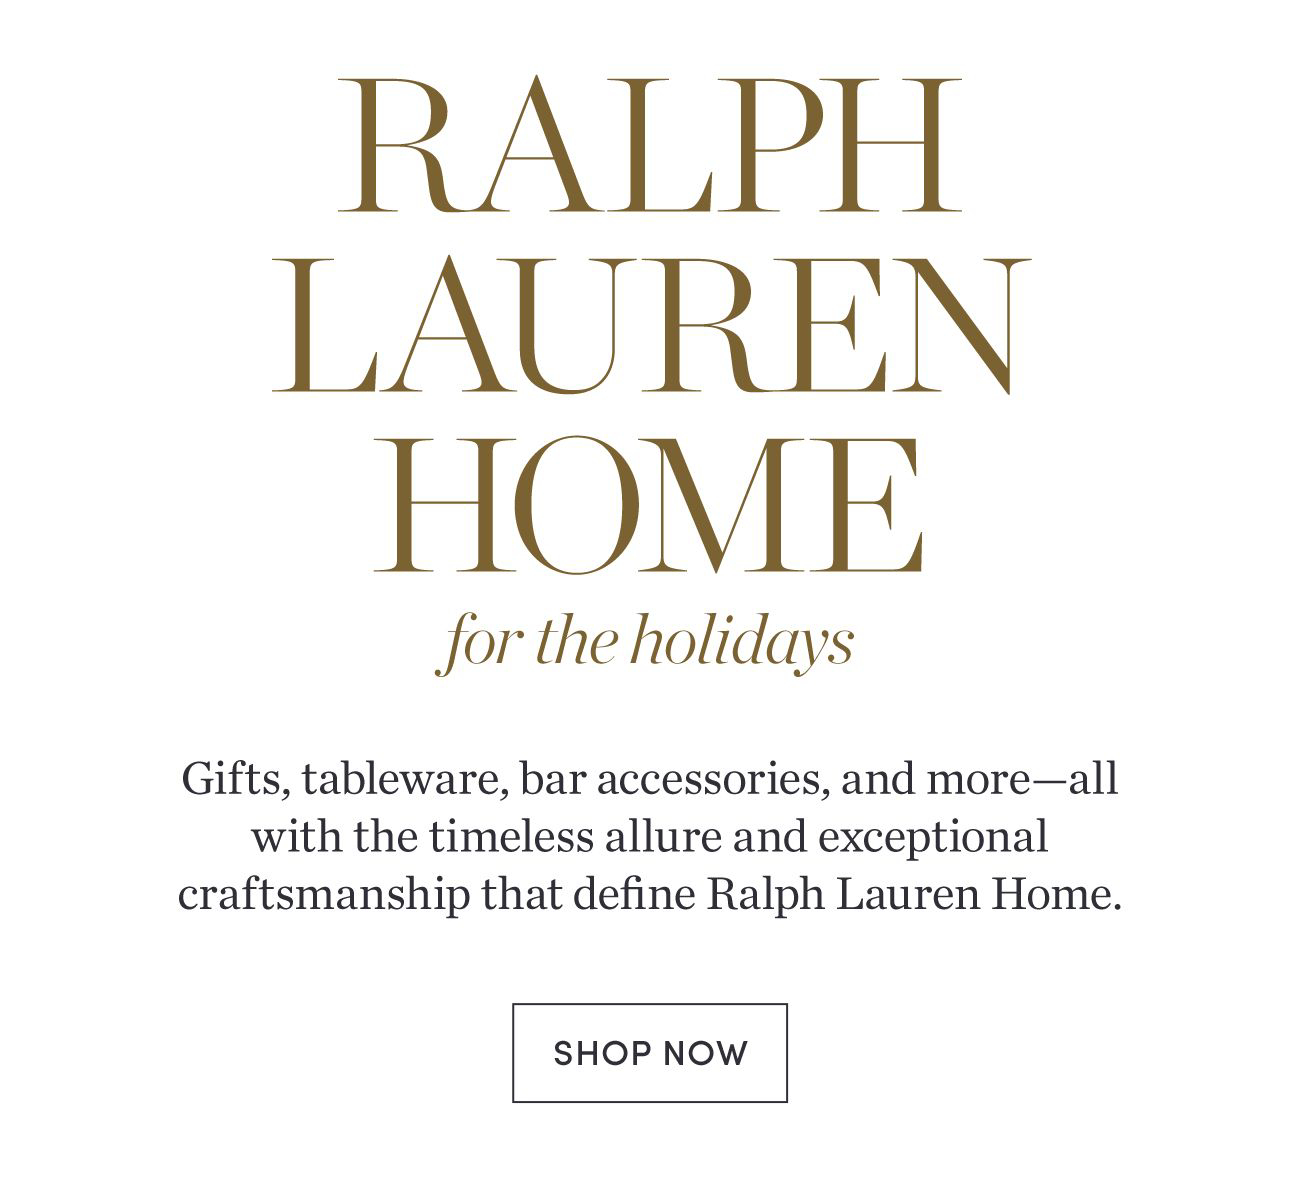 Gifts, tableware, bar accessories and more - Shop Now >